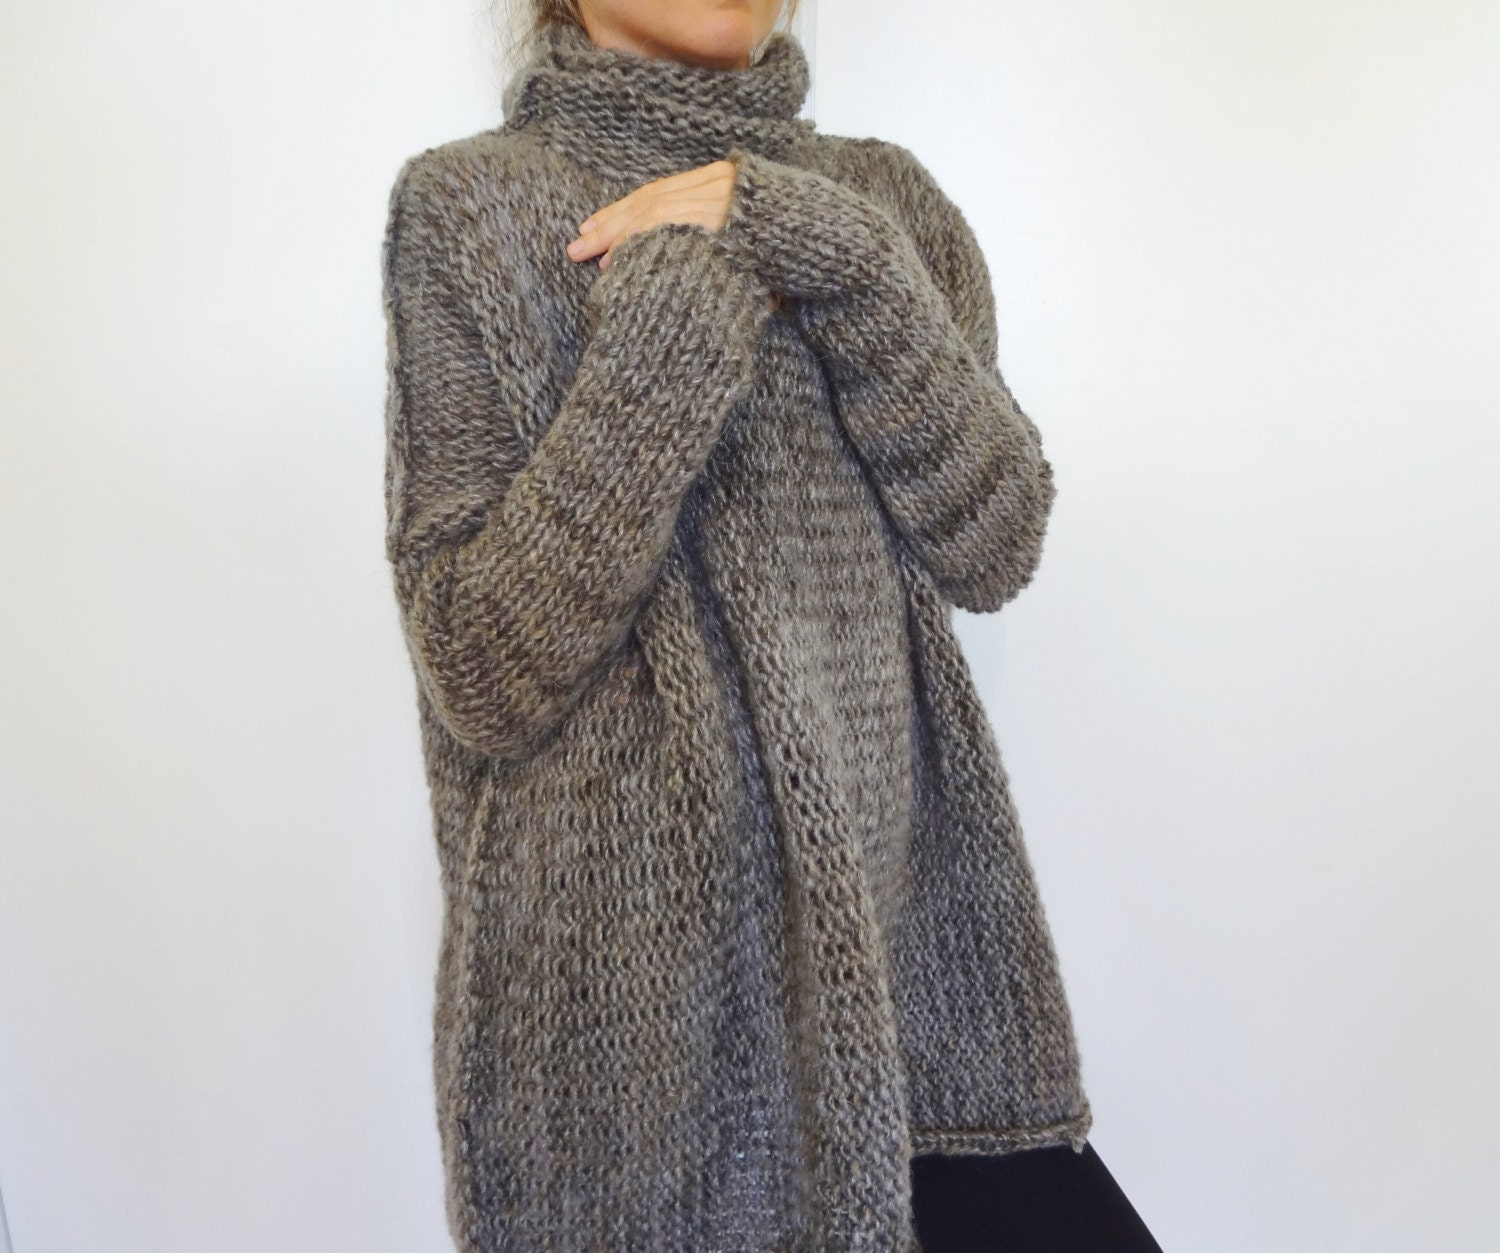 Knitting Patterns For Chunky Sweaters : Oversized Chunky knit sweater.Slouchy/Bulky/ Loose sweater.